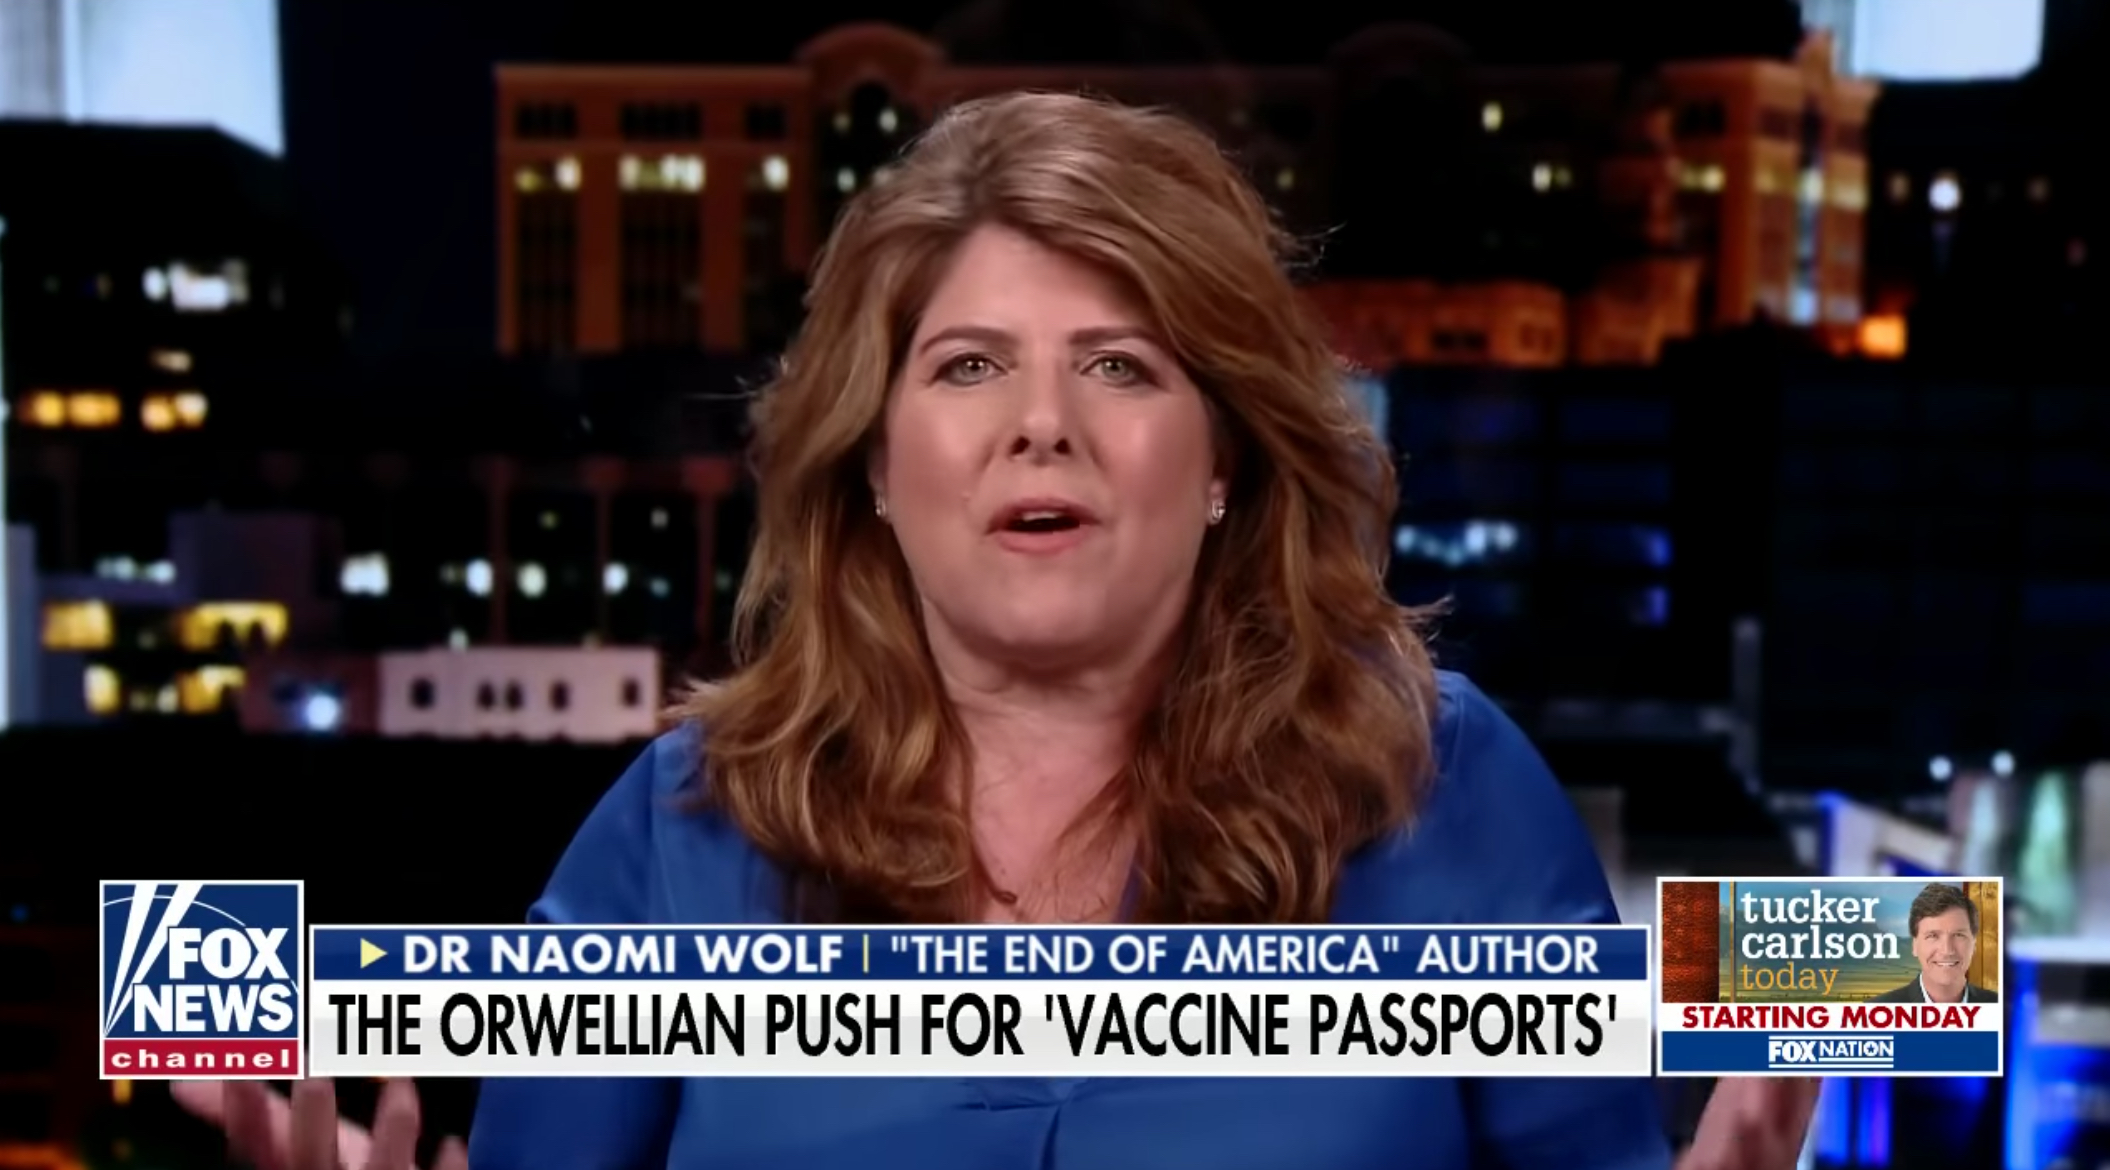 Naomi Wolf goes on Fox News to talk about COVID vaccines